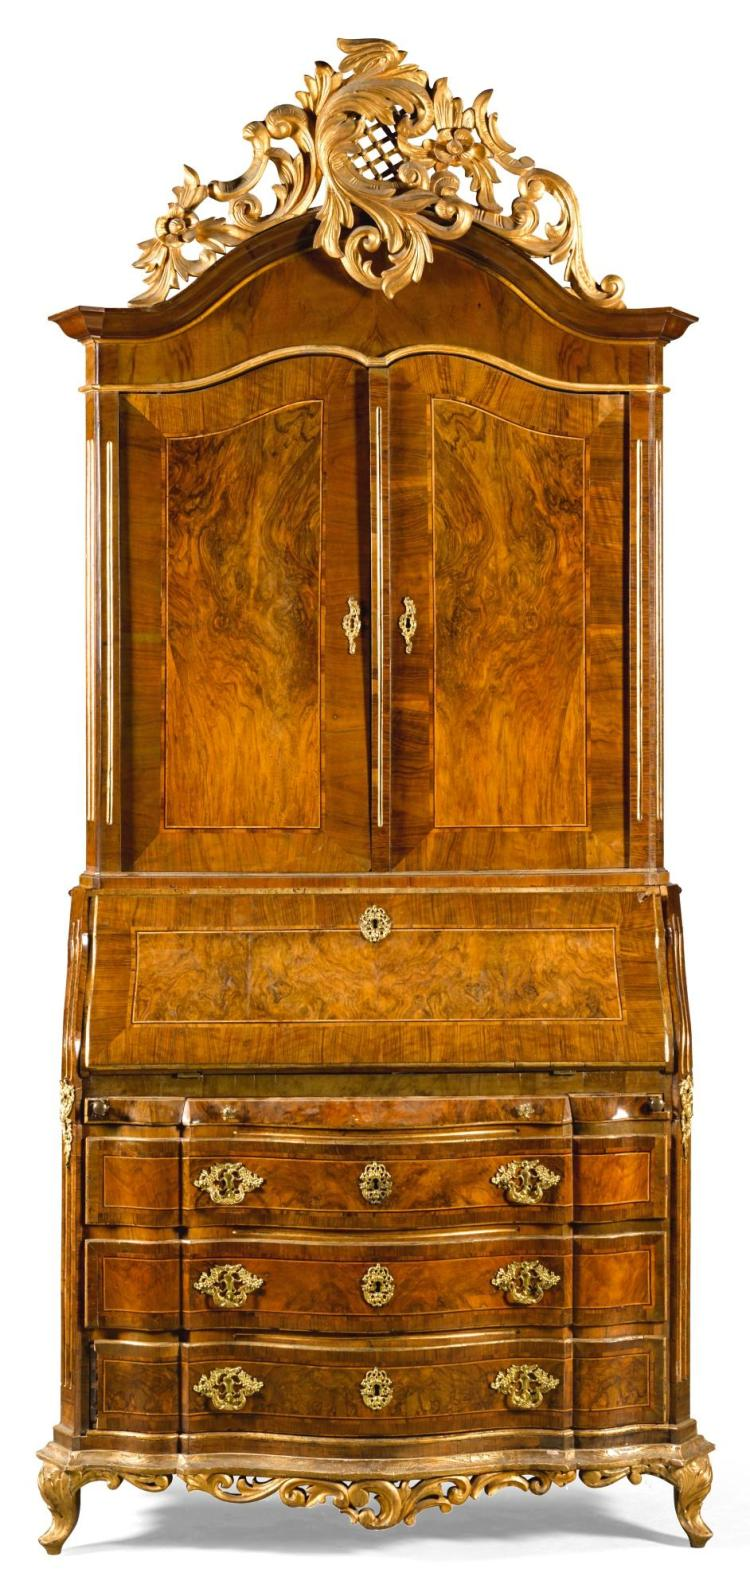 A DANISH ROCOCO GILT-BRONZE MOUNTED PARCEL-GILT WALNUT BUREAU-CABINET MID 18TH CENTURY, PROBABLY SCHLESWIG HOLSTEIN |